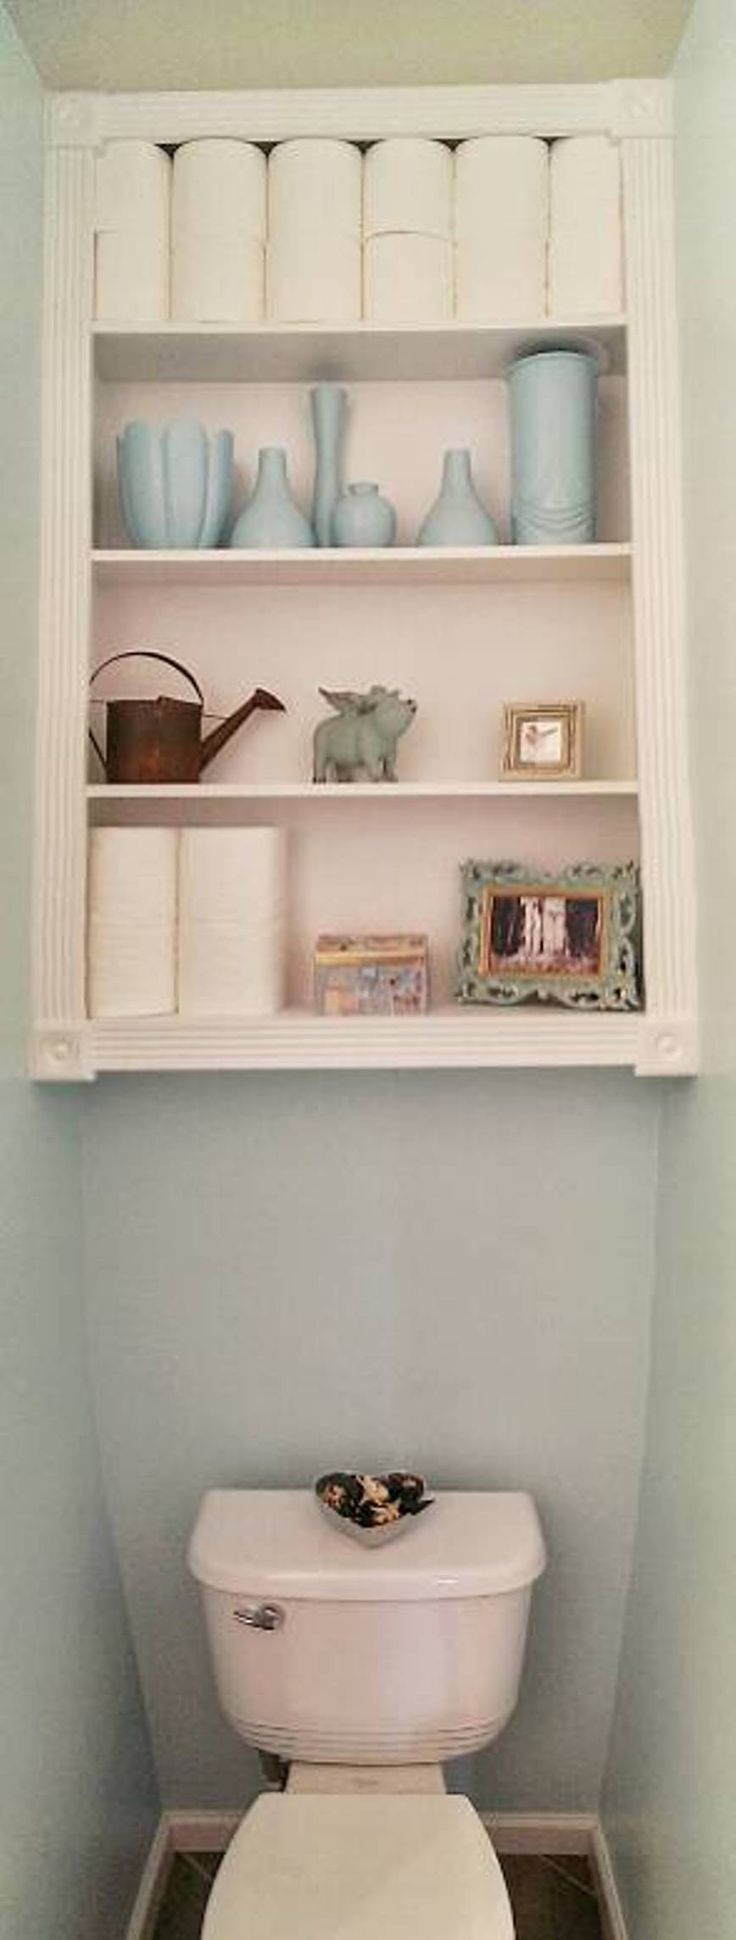 Bathroom wall cabinet toilet - Storage And Organization Space Saving Over The Toilet Storage Wall Mounted Cabinet Open Shelves